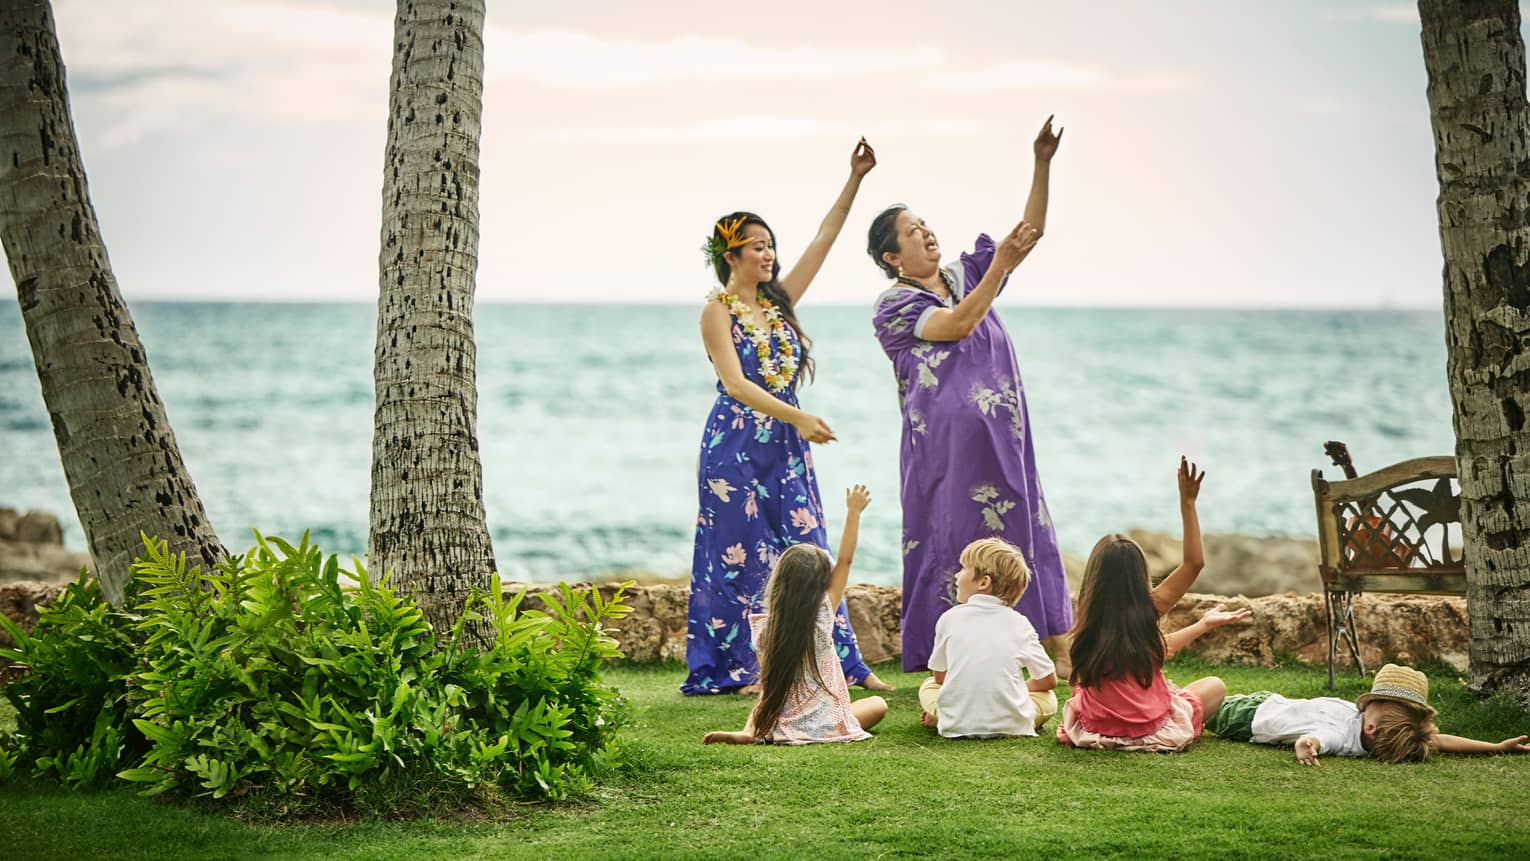 Young children sit on lawn by ocean, watch two Hawaiian women demonstrate dances